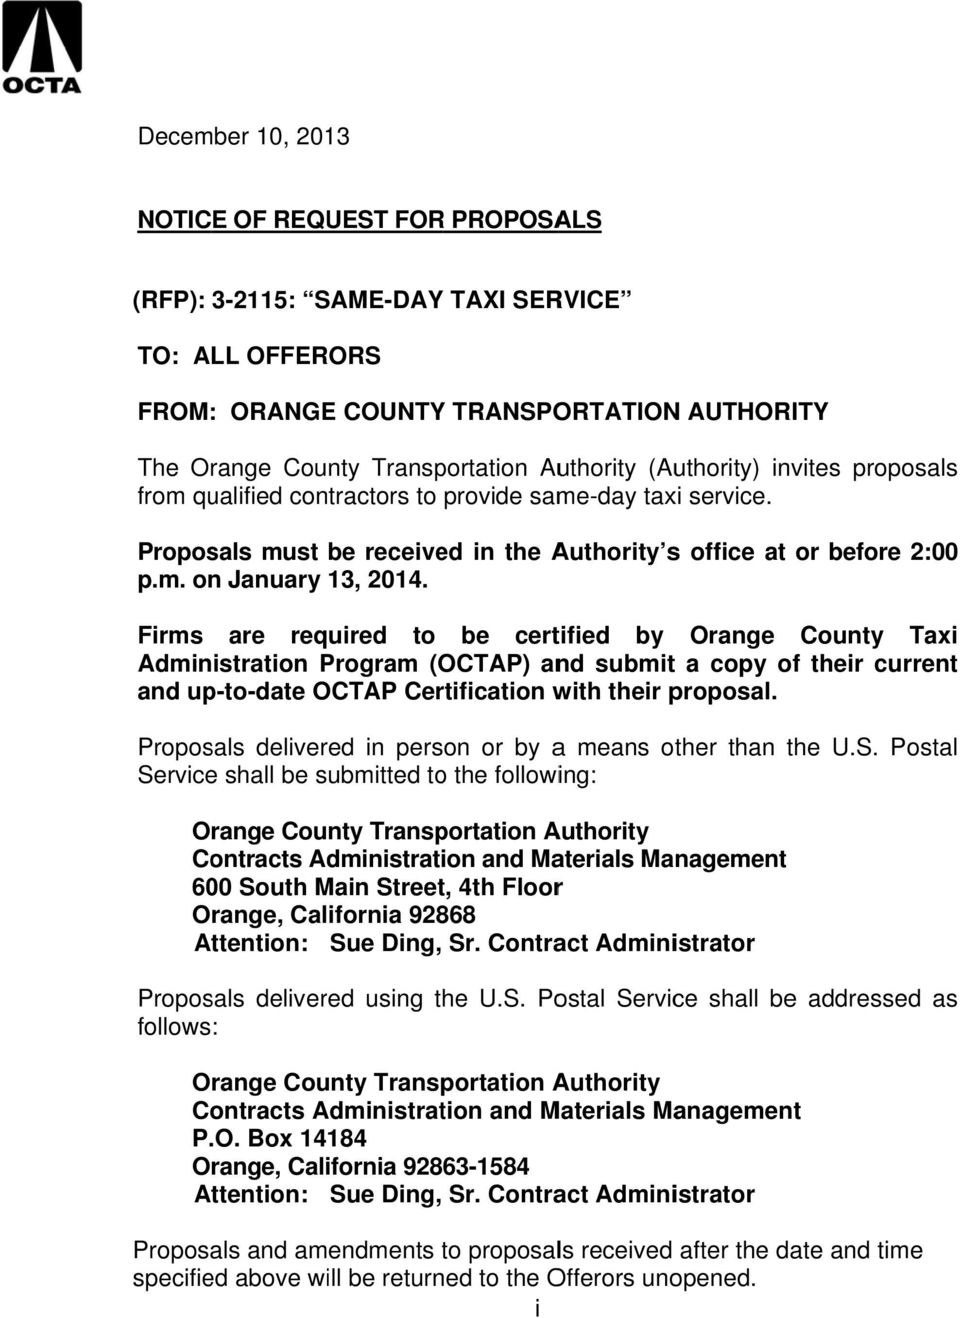 or before 2:00 Firms are required to be certified by Orange County Taxi Administration Program (OCTAP) and submitt a copy of their current and up-to-date OCTAP Certification with their proposal.